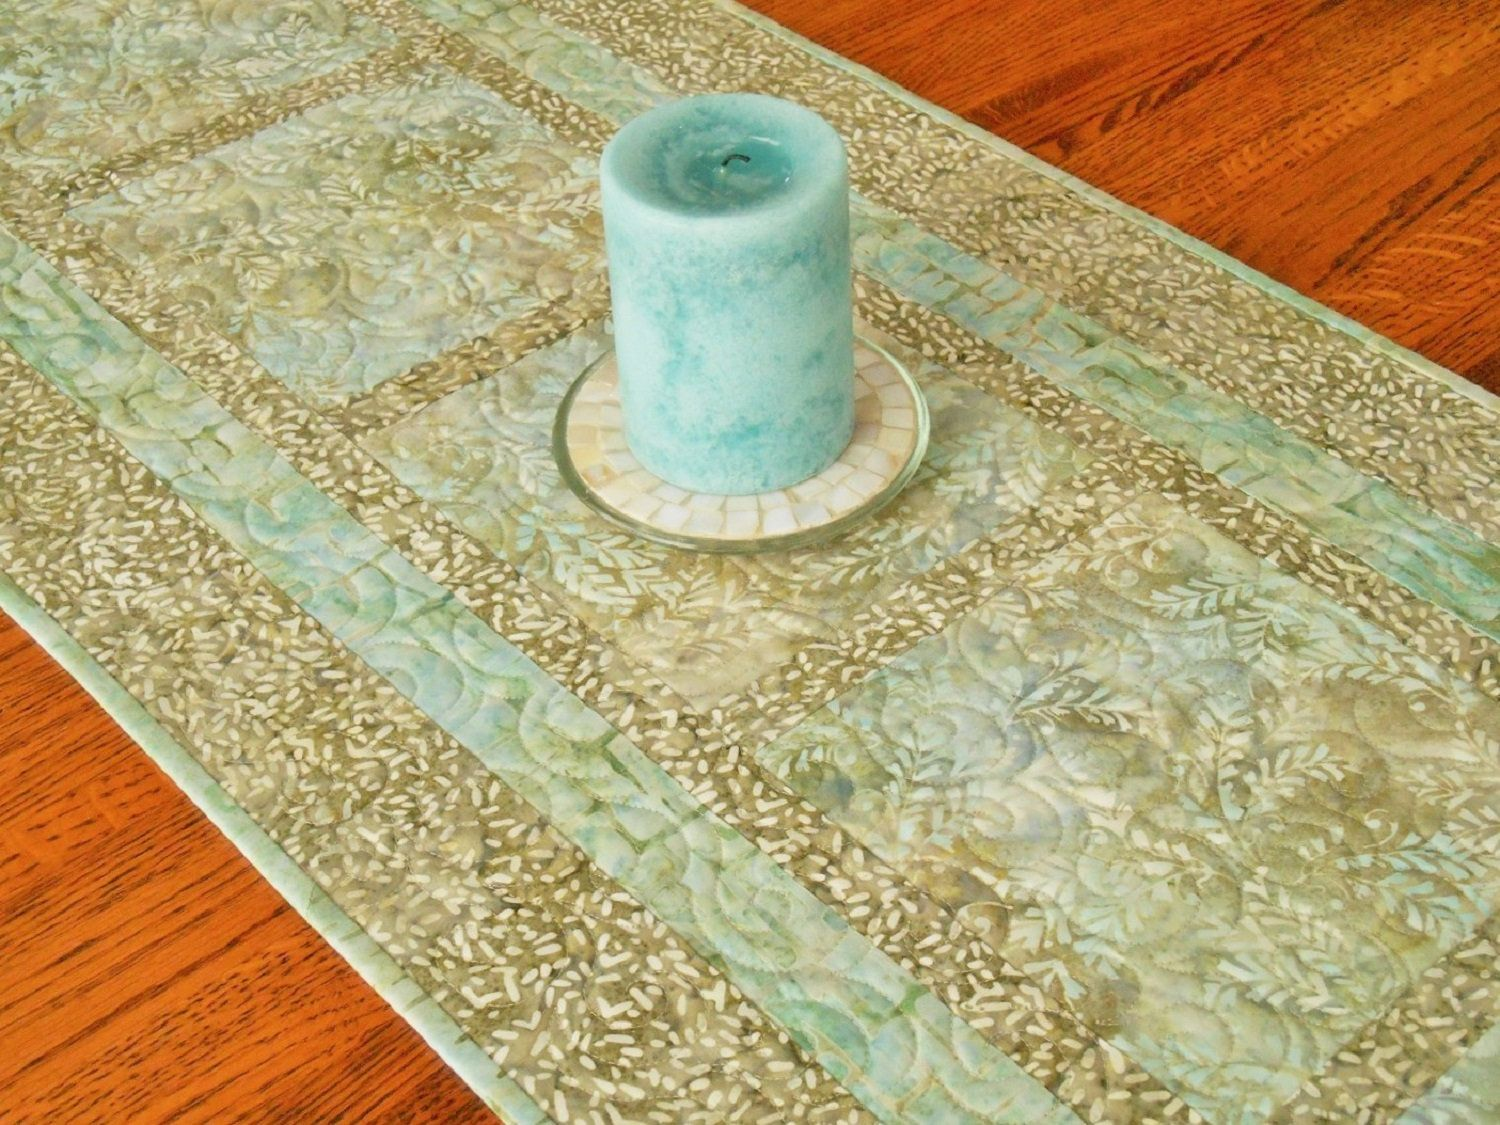 Quilted Batik Table Runner In Shades Of Aqua Taupe Khaki Bedroom Dresser Decor Bureau Scarf Dining Ta Dining Table Runners Batik Table Runners Dresser Decor